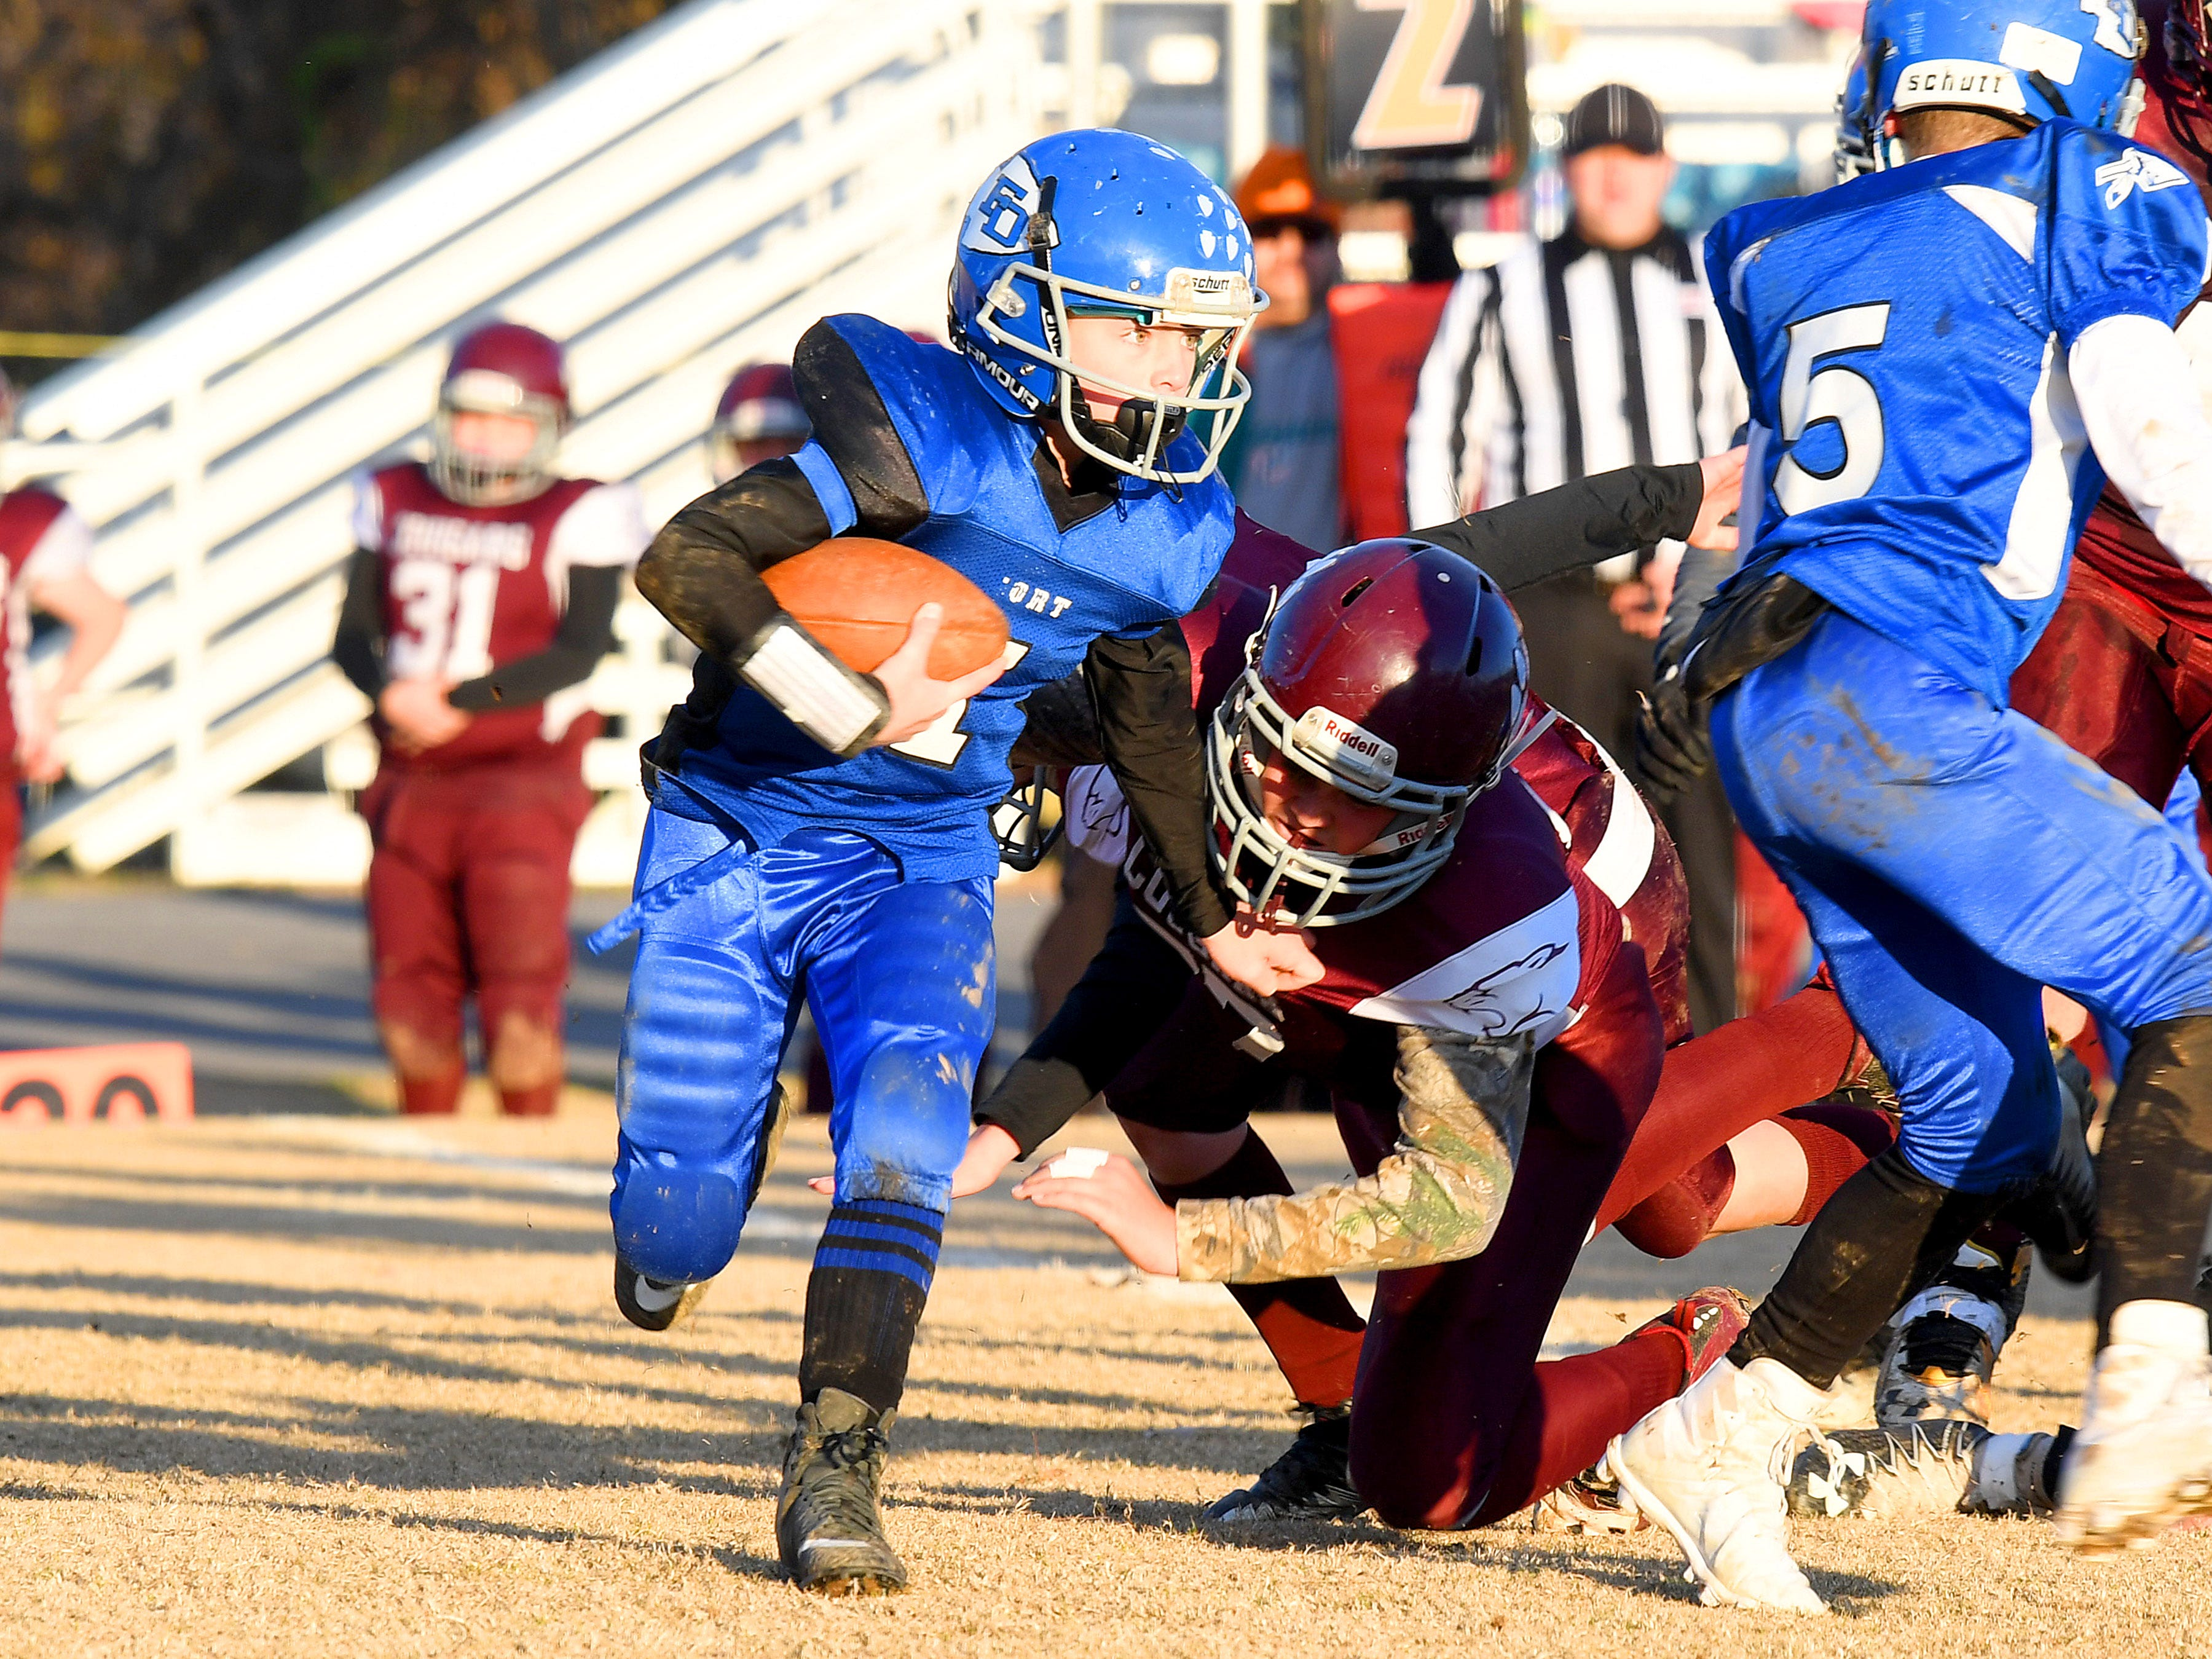 Fort Defiance's Bradley Hebb breaks free of a tackle attempt and keeps running the ball during the Augusta County Quarterback Club Juniors Super Bowl in Fishersville on Sunday, Nov. 11, 2018.  Fort Defiance beats Stuarts Draft, 13-12.